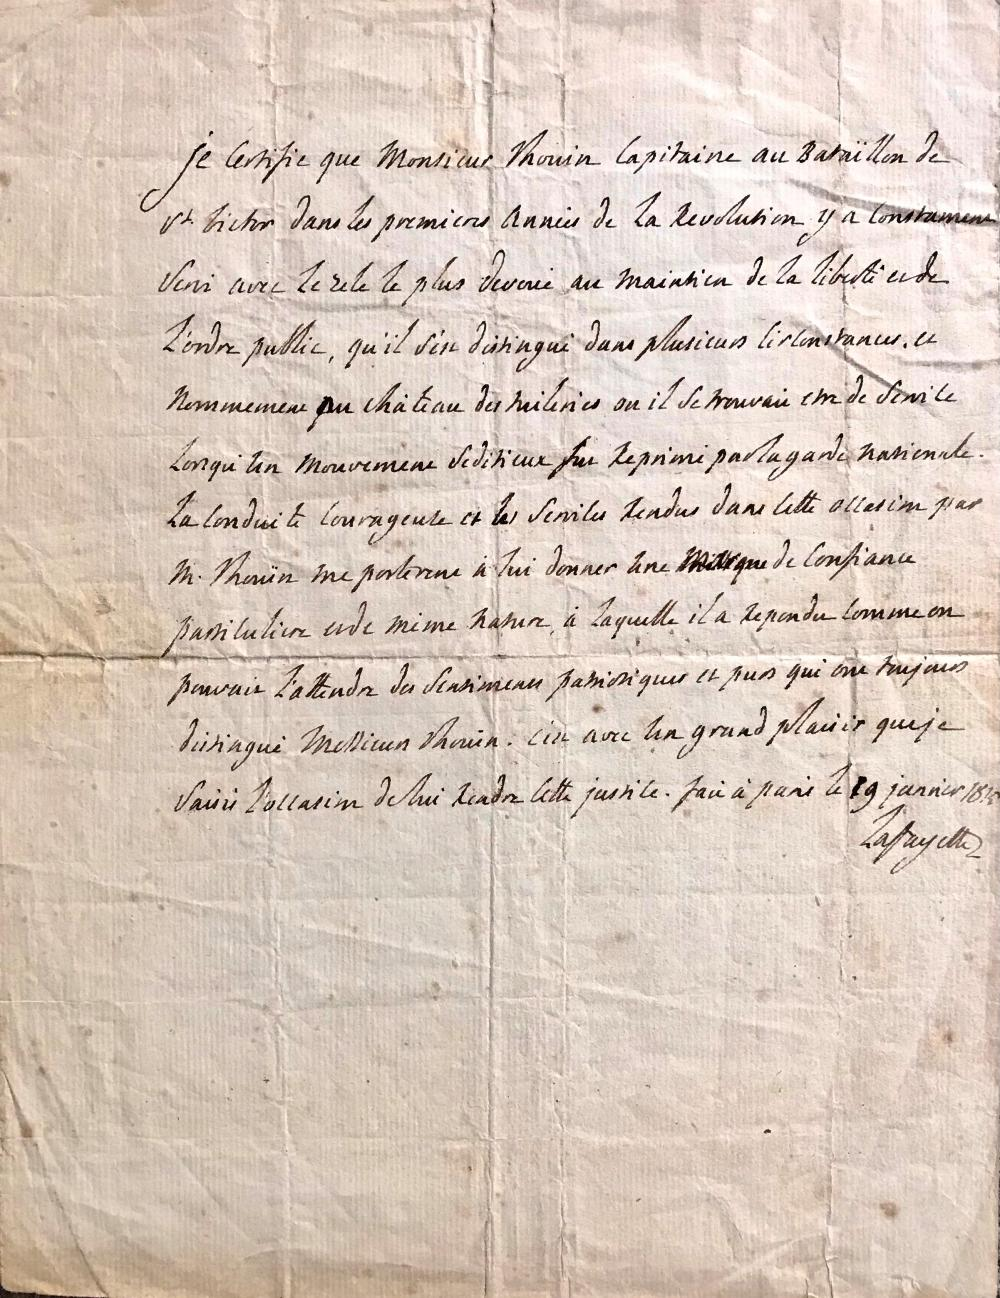 Lafayette Praises Captain Who Protected King Louis XVI During the French Revolution